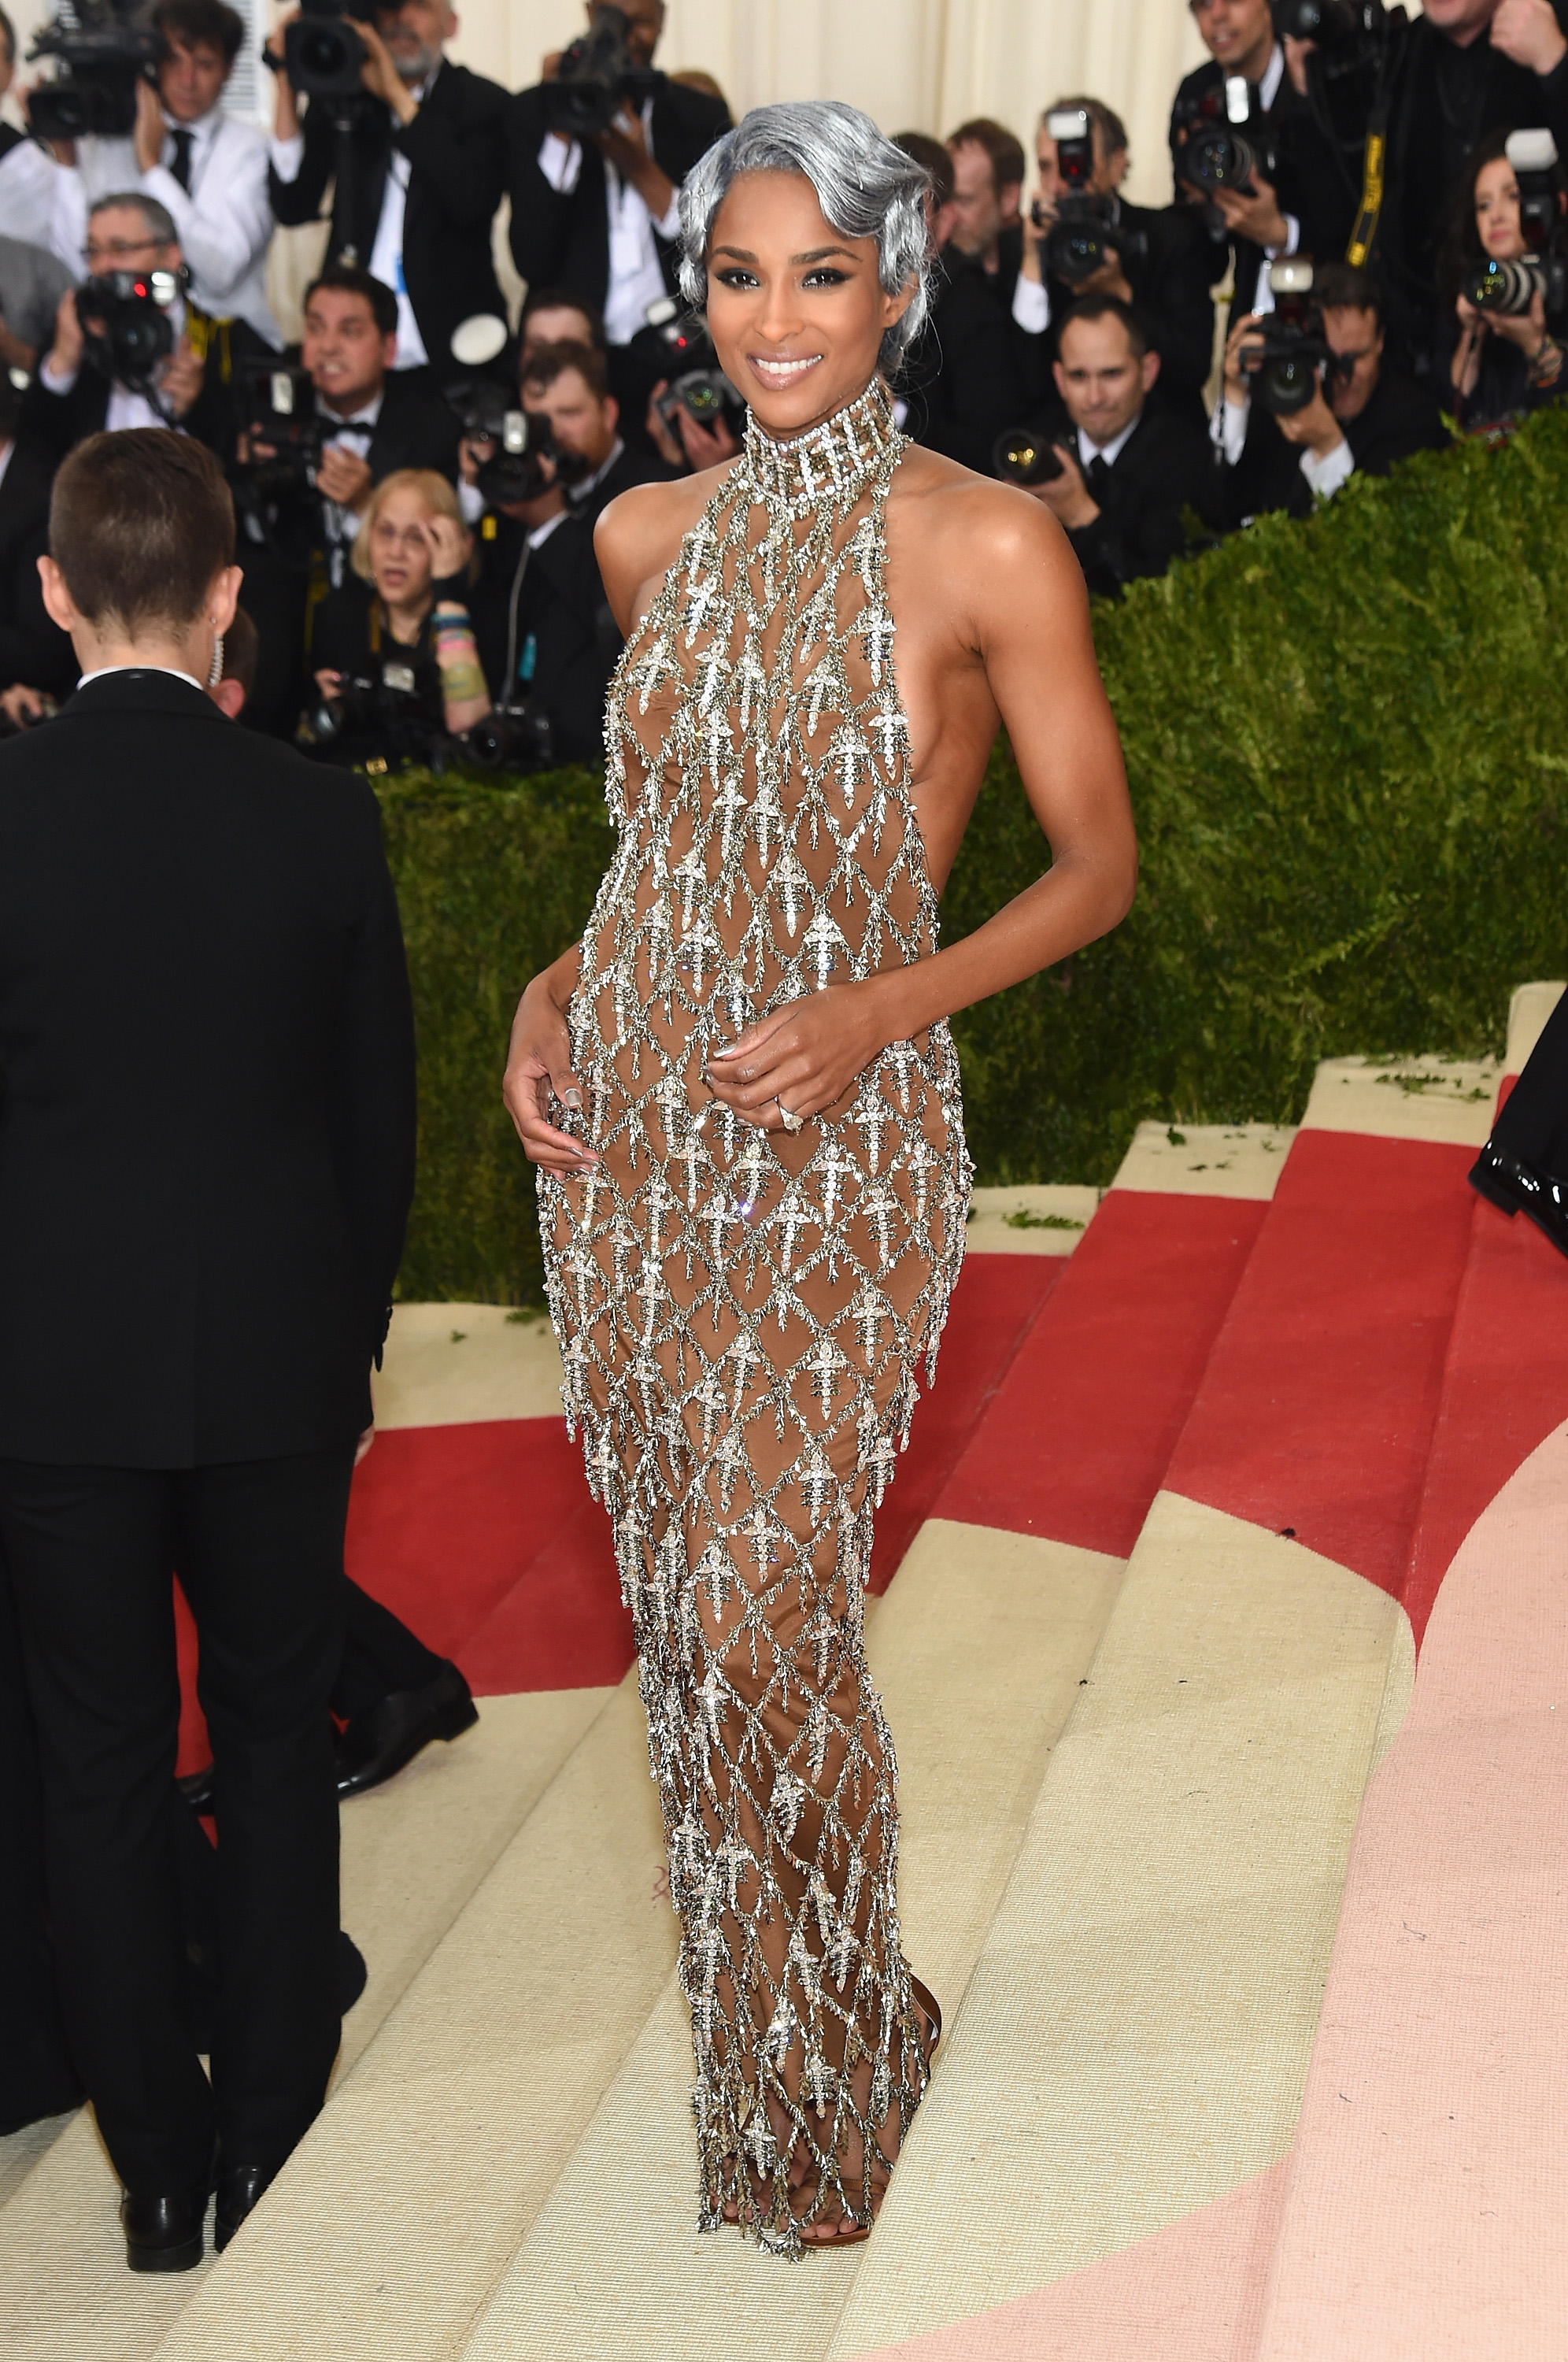 Ciara attends  Manus x Machina: Fashion In An Age Of Technology  Costume Institute Gala at Metropolitan Museum of Art on May 2, 2016 in New York City.